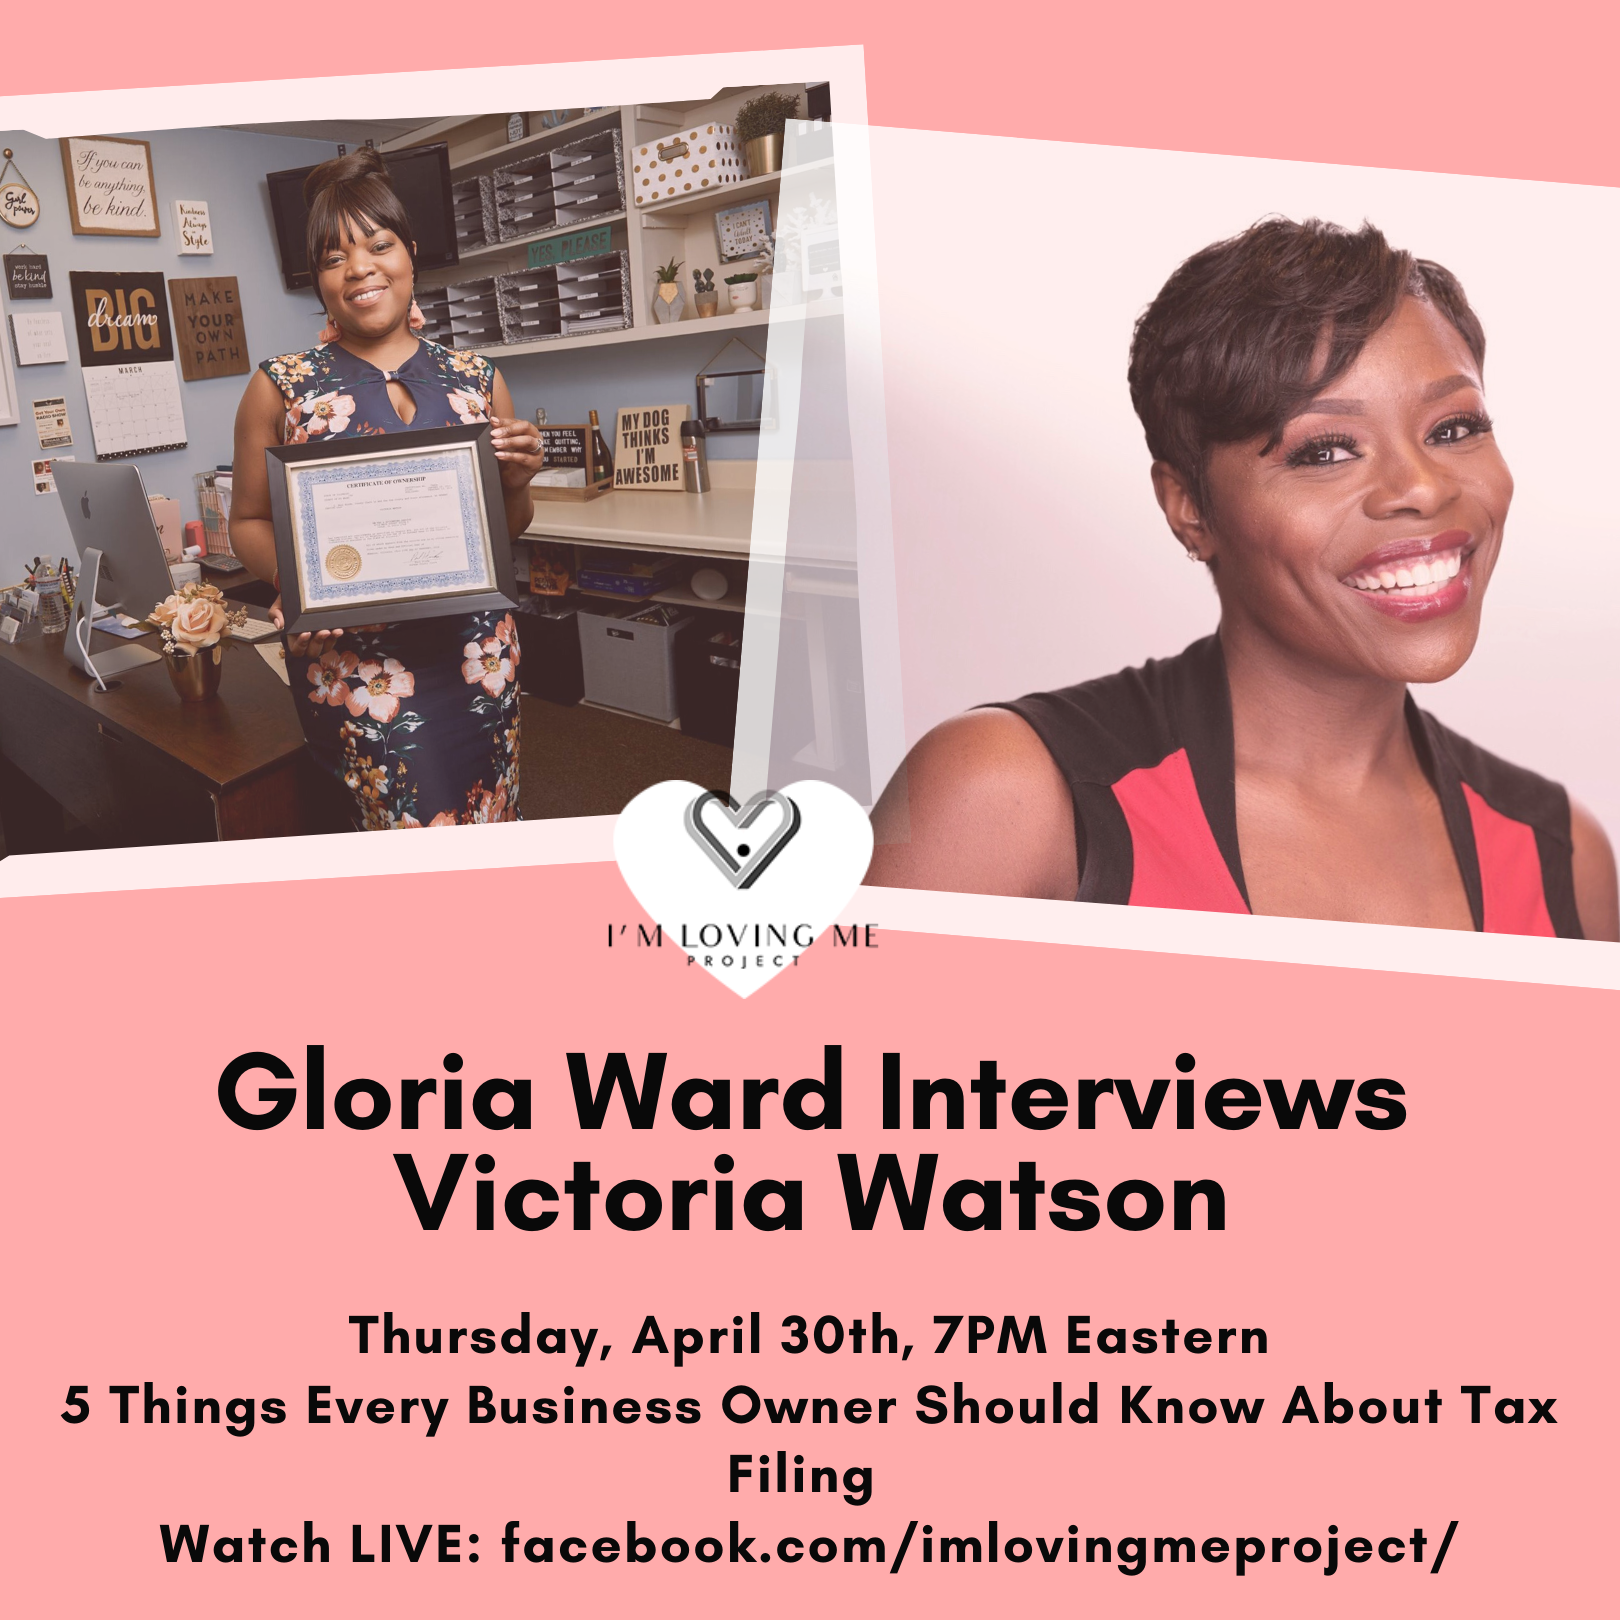 5 Things Every Business Owner Should Know About Tax Filing with Victoria Watson